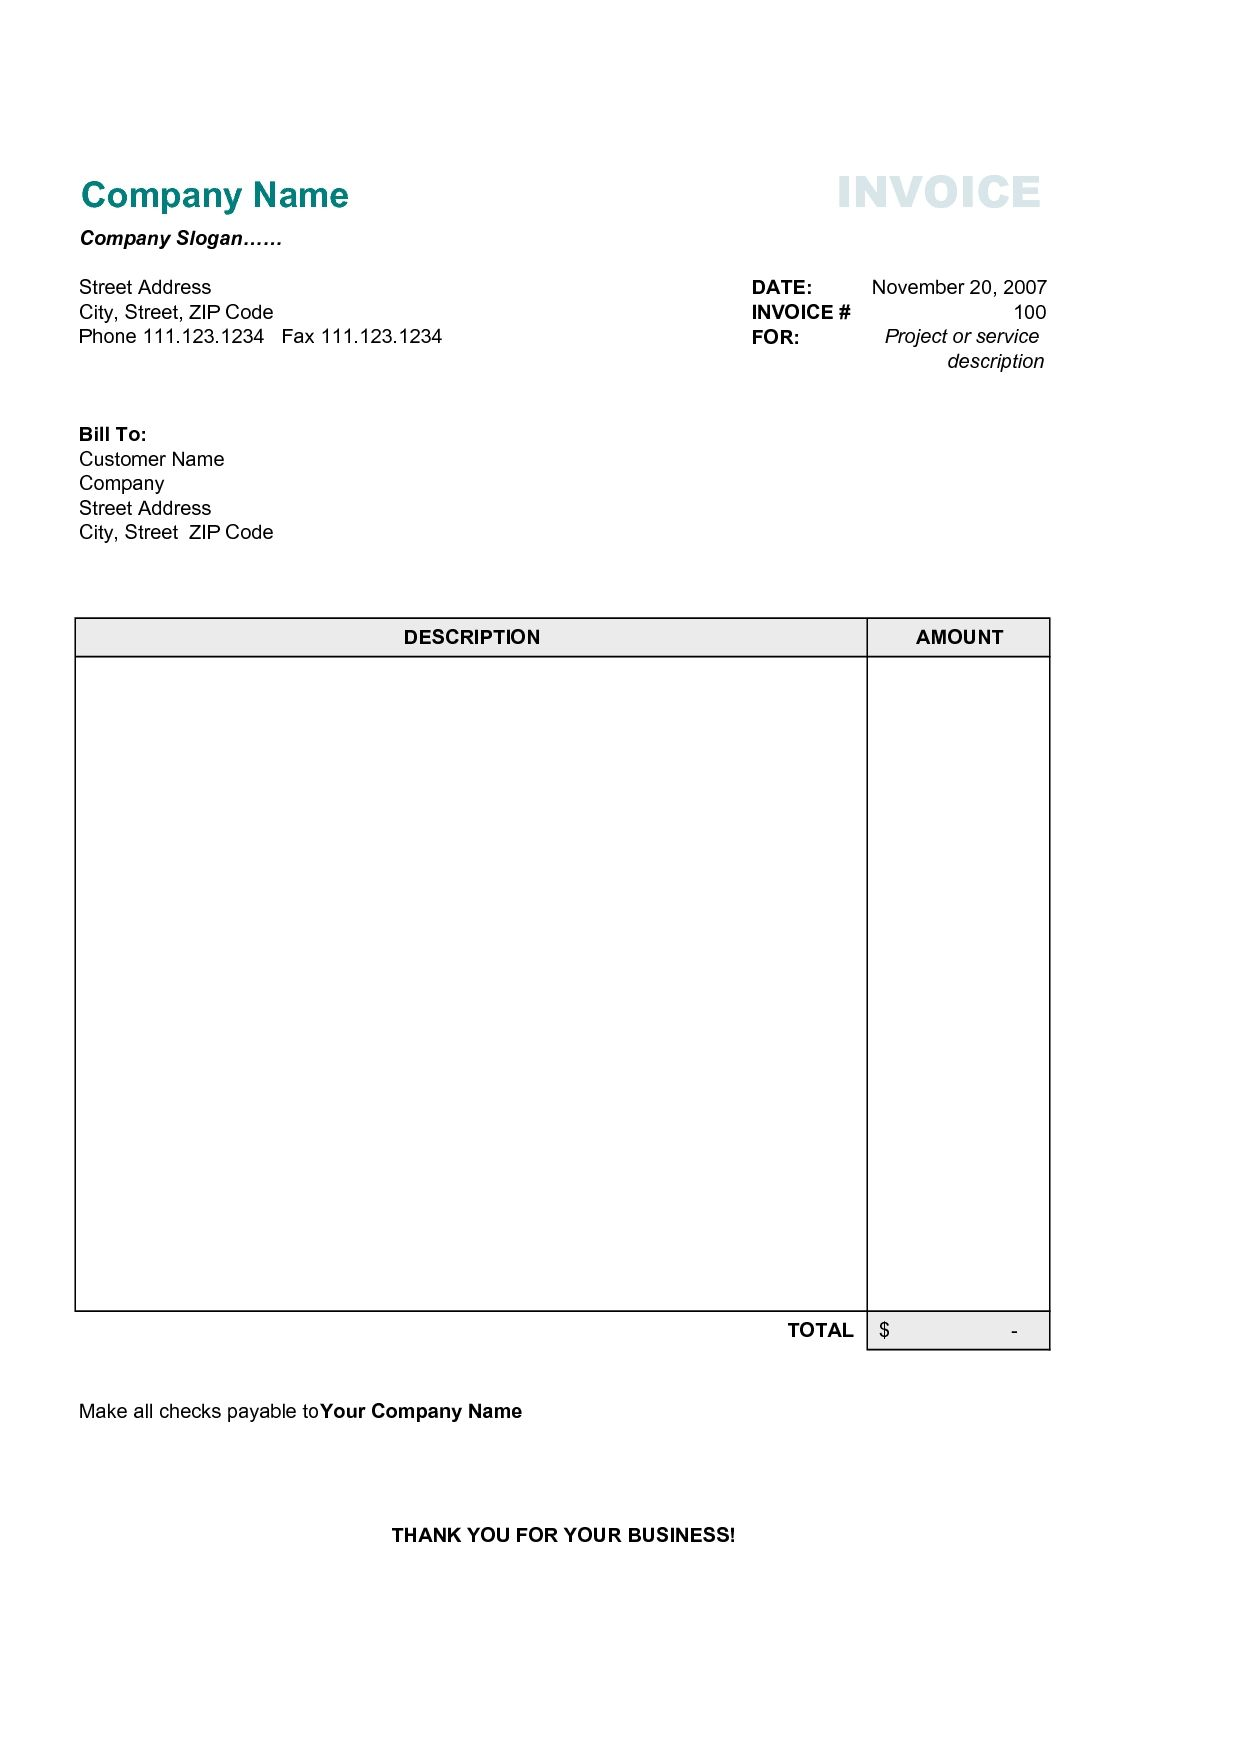 Free Business Invoice Template Best Business Template Free Invoice - Business invoice templates